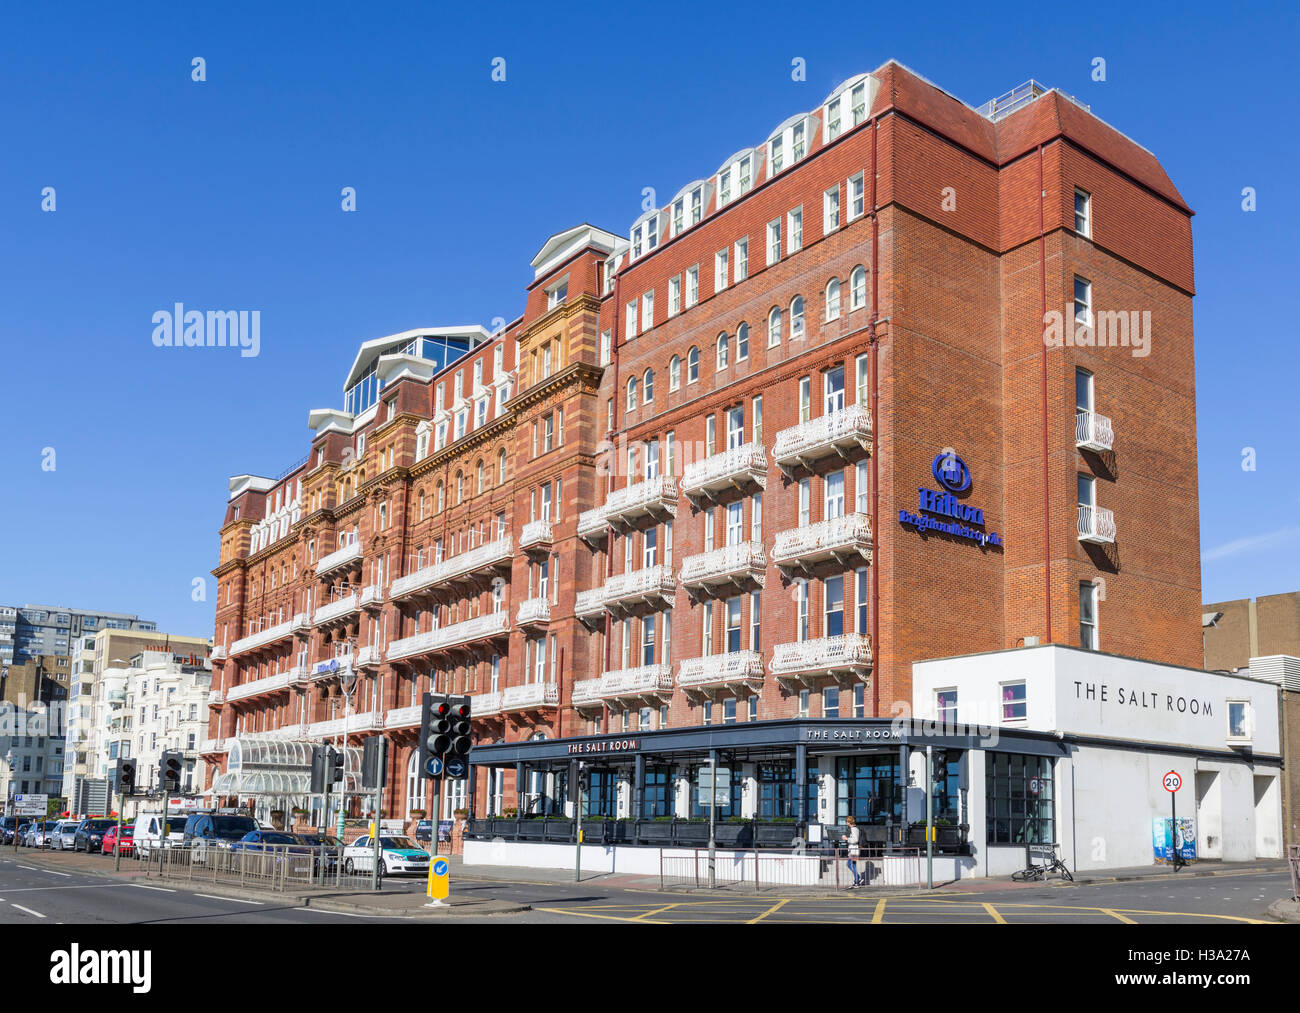 Hilton Brighton Metropole.hotel, a Victorian hotel near the seafront in Brighton, East Sussex, England, UK. - Stock Image